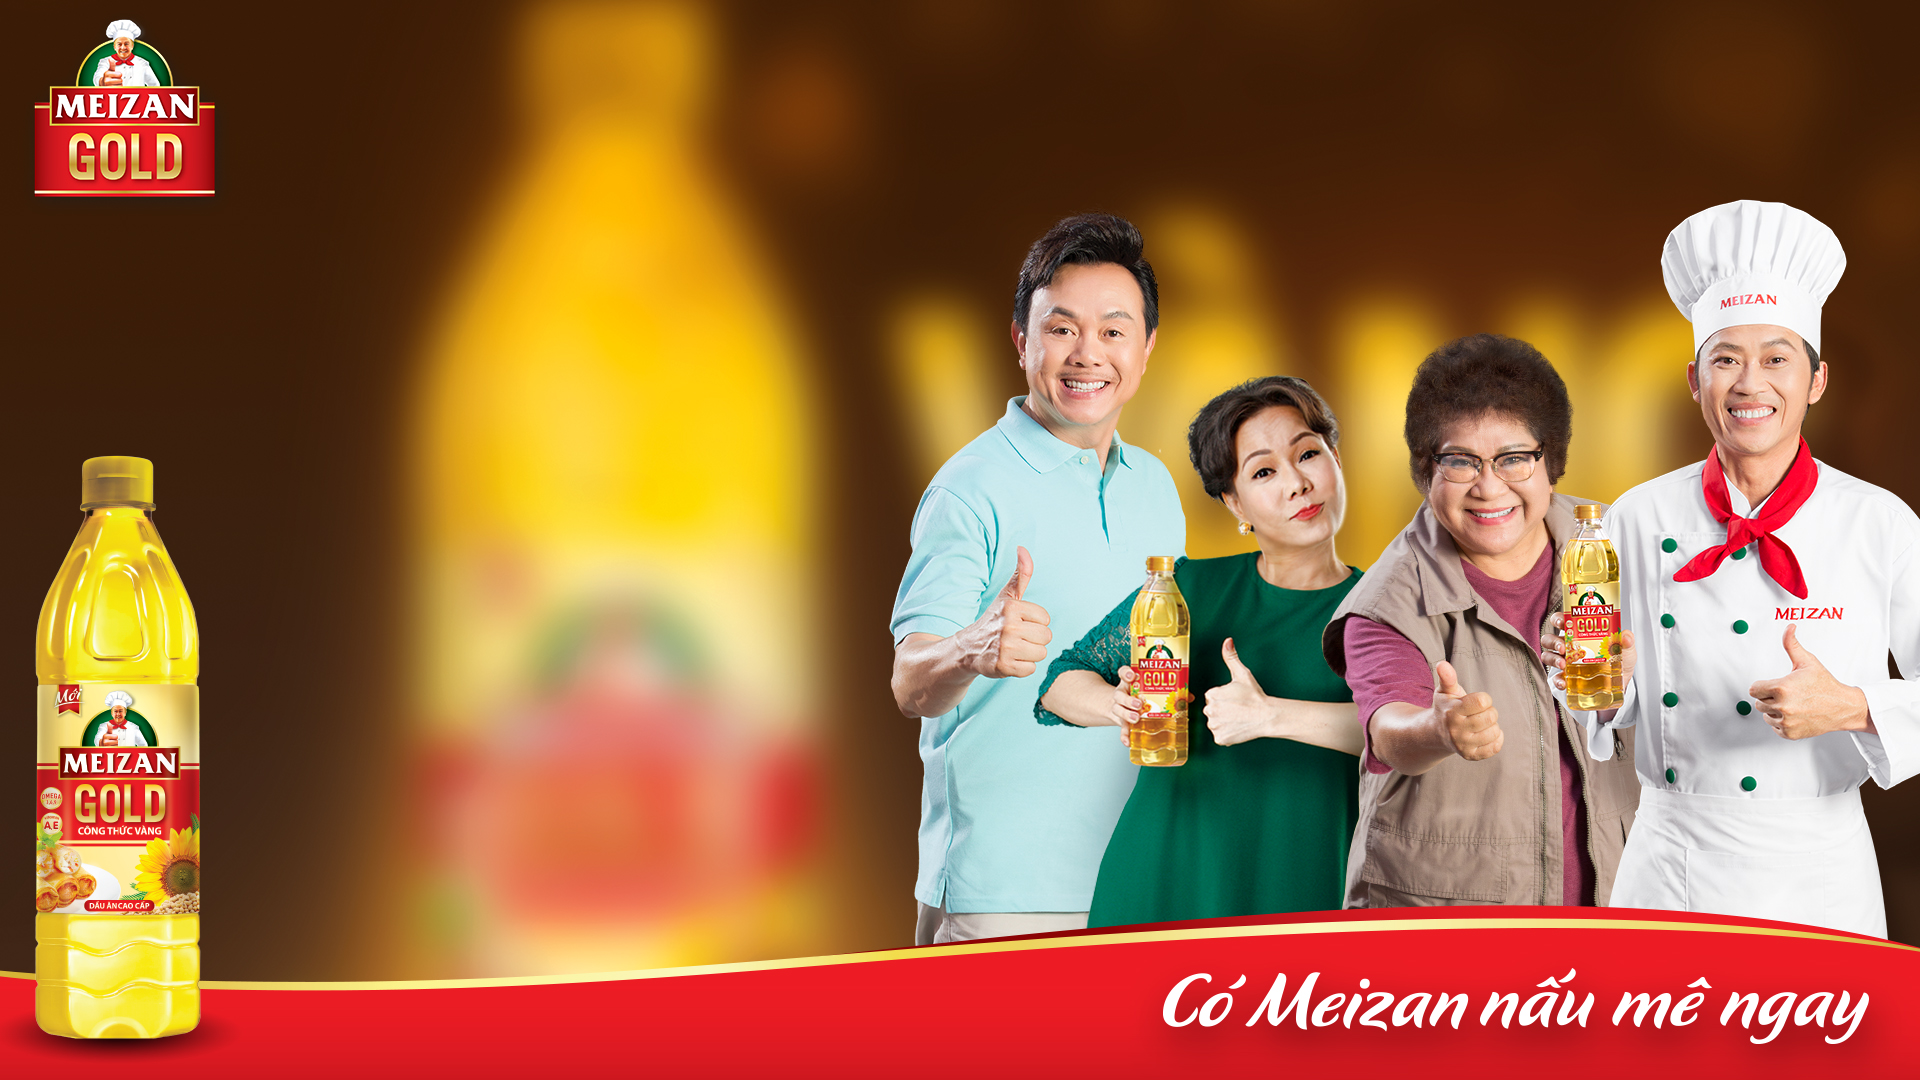 Meizan Gold – Paid Media Booking Campaign